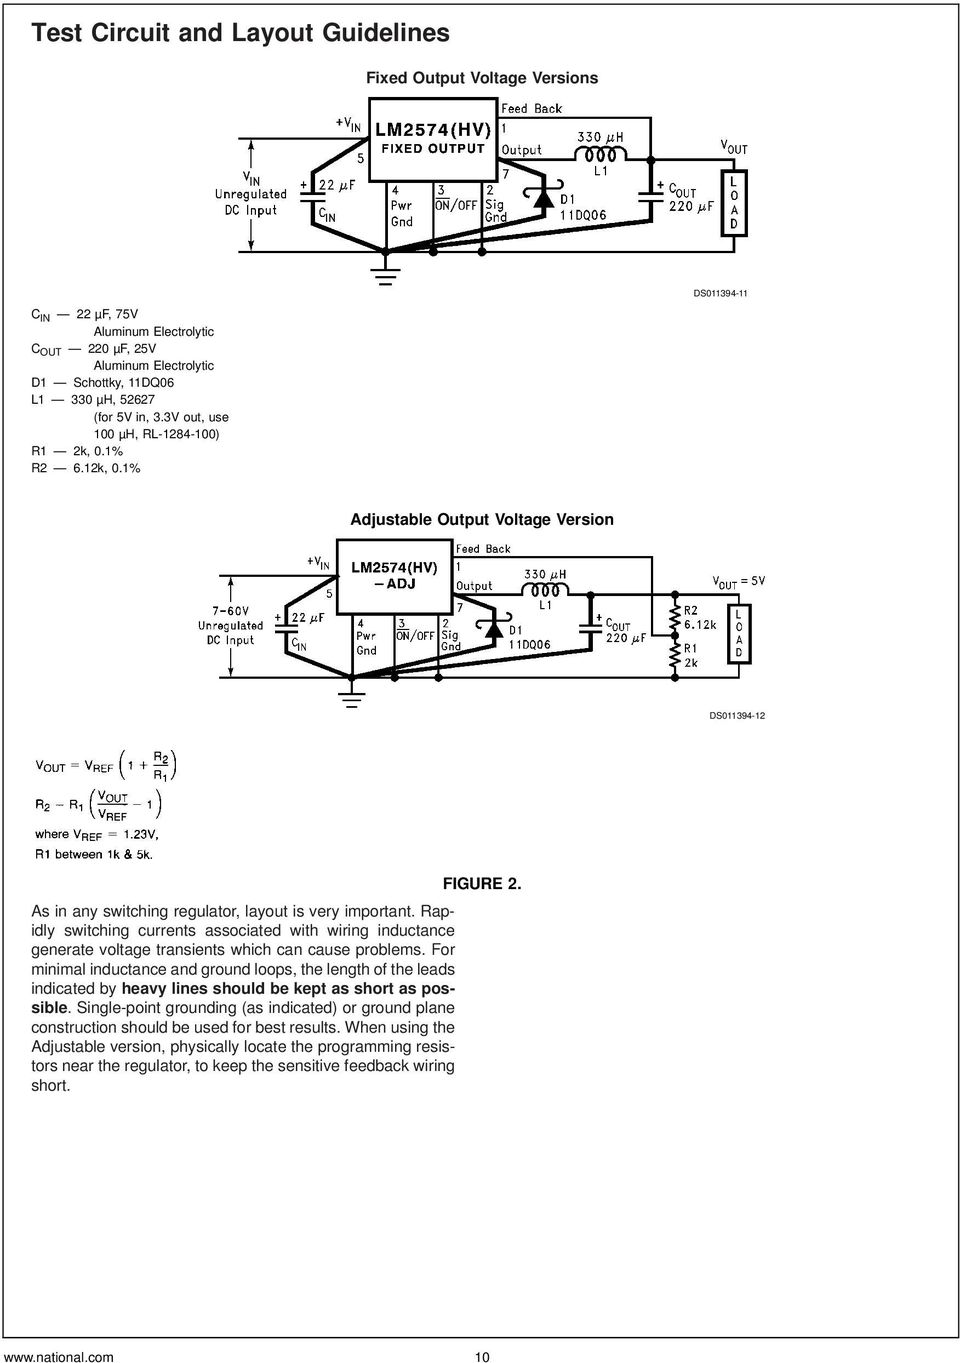 Lm2574 Lm2574hv Simple Switcher 05a Step Down Voltage Regulator Pdf Lamp Flasher Using Lm317 Rapidly Switching Currents Associated With Wiring Inductance Generate Transients Which Can Cause Problems